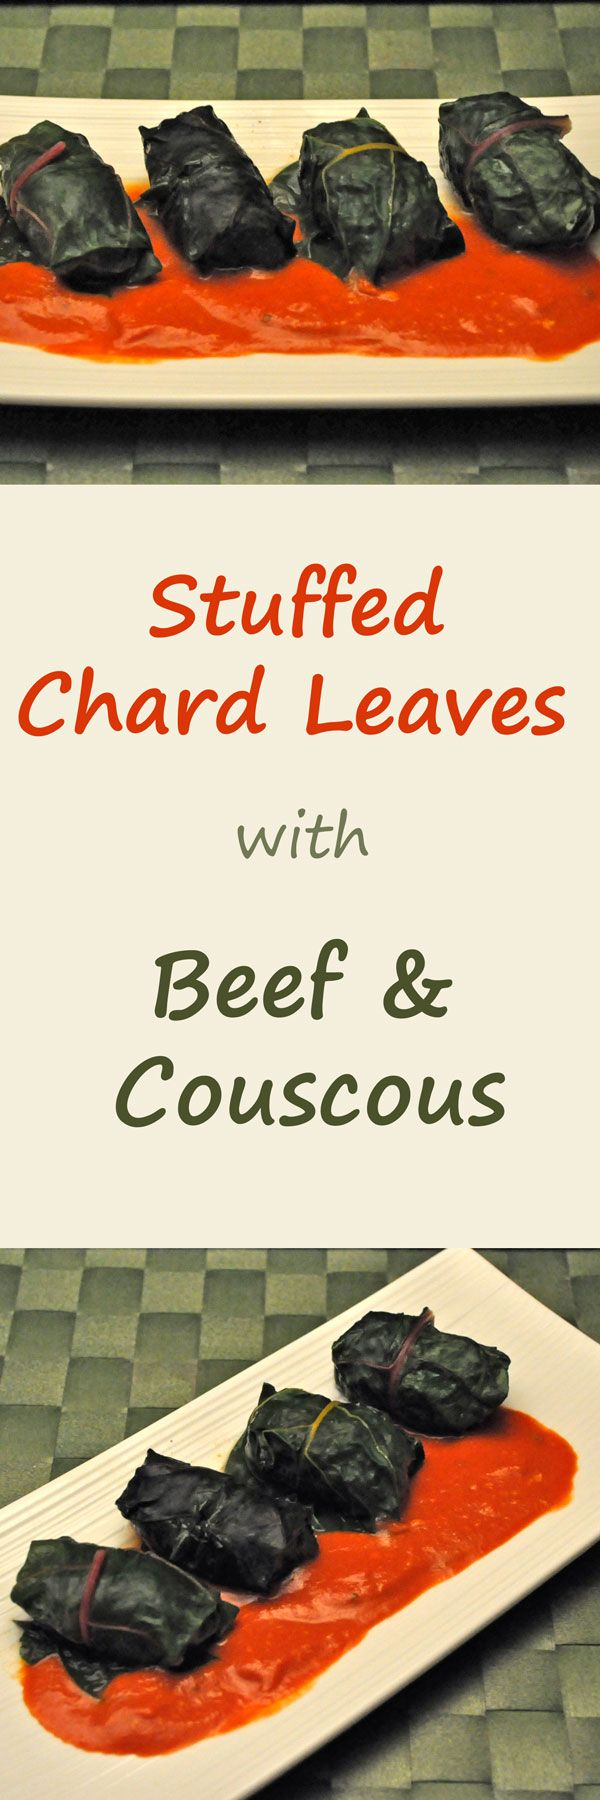 Chard leaves are a great and easy substitute for grape leaves, Chard Leaves stuffed with Ground Beef and Couscous